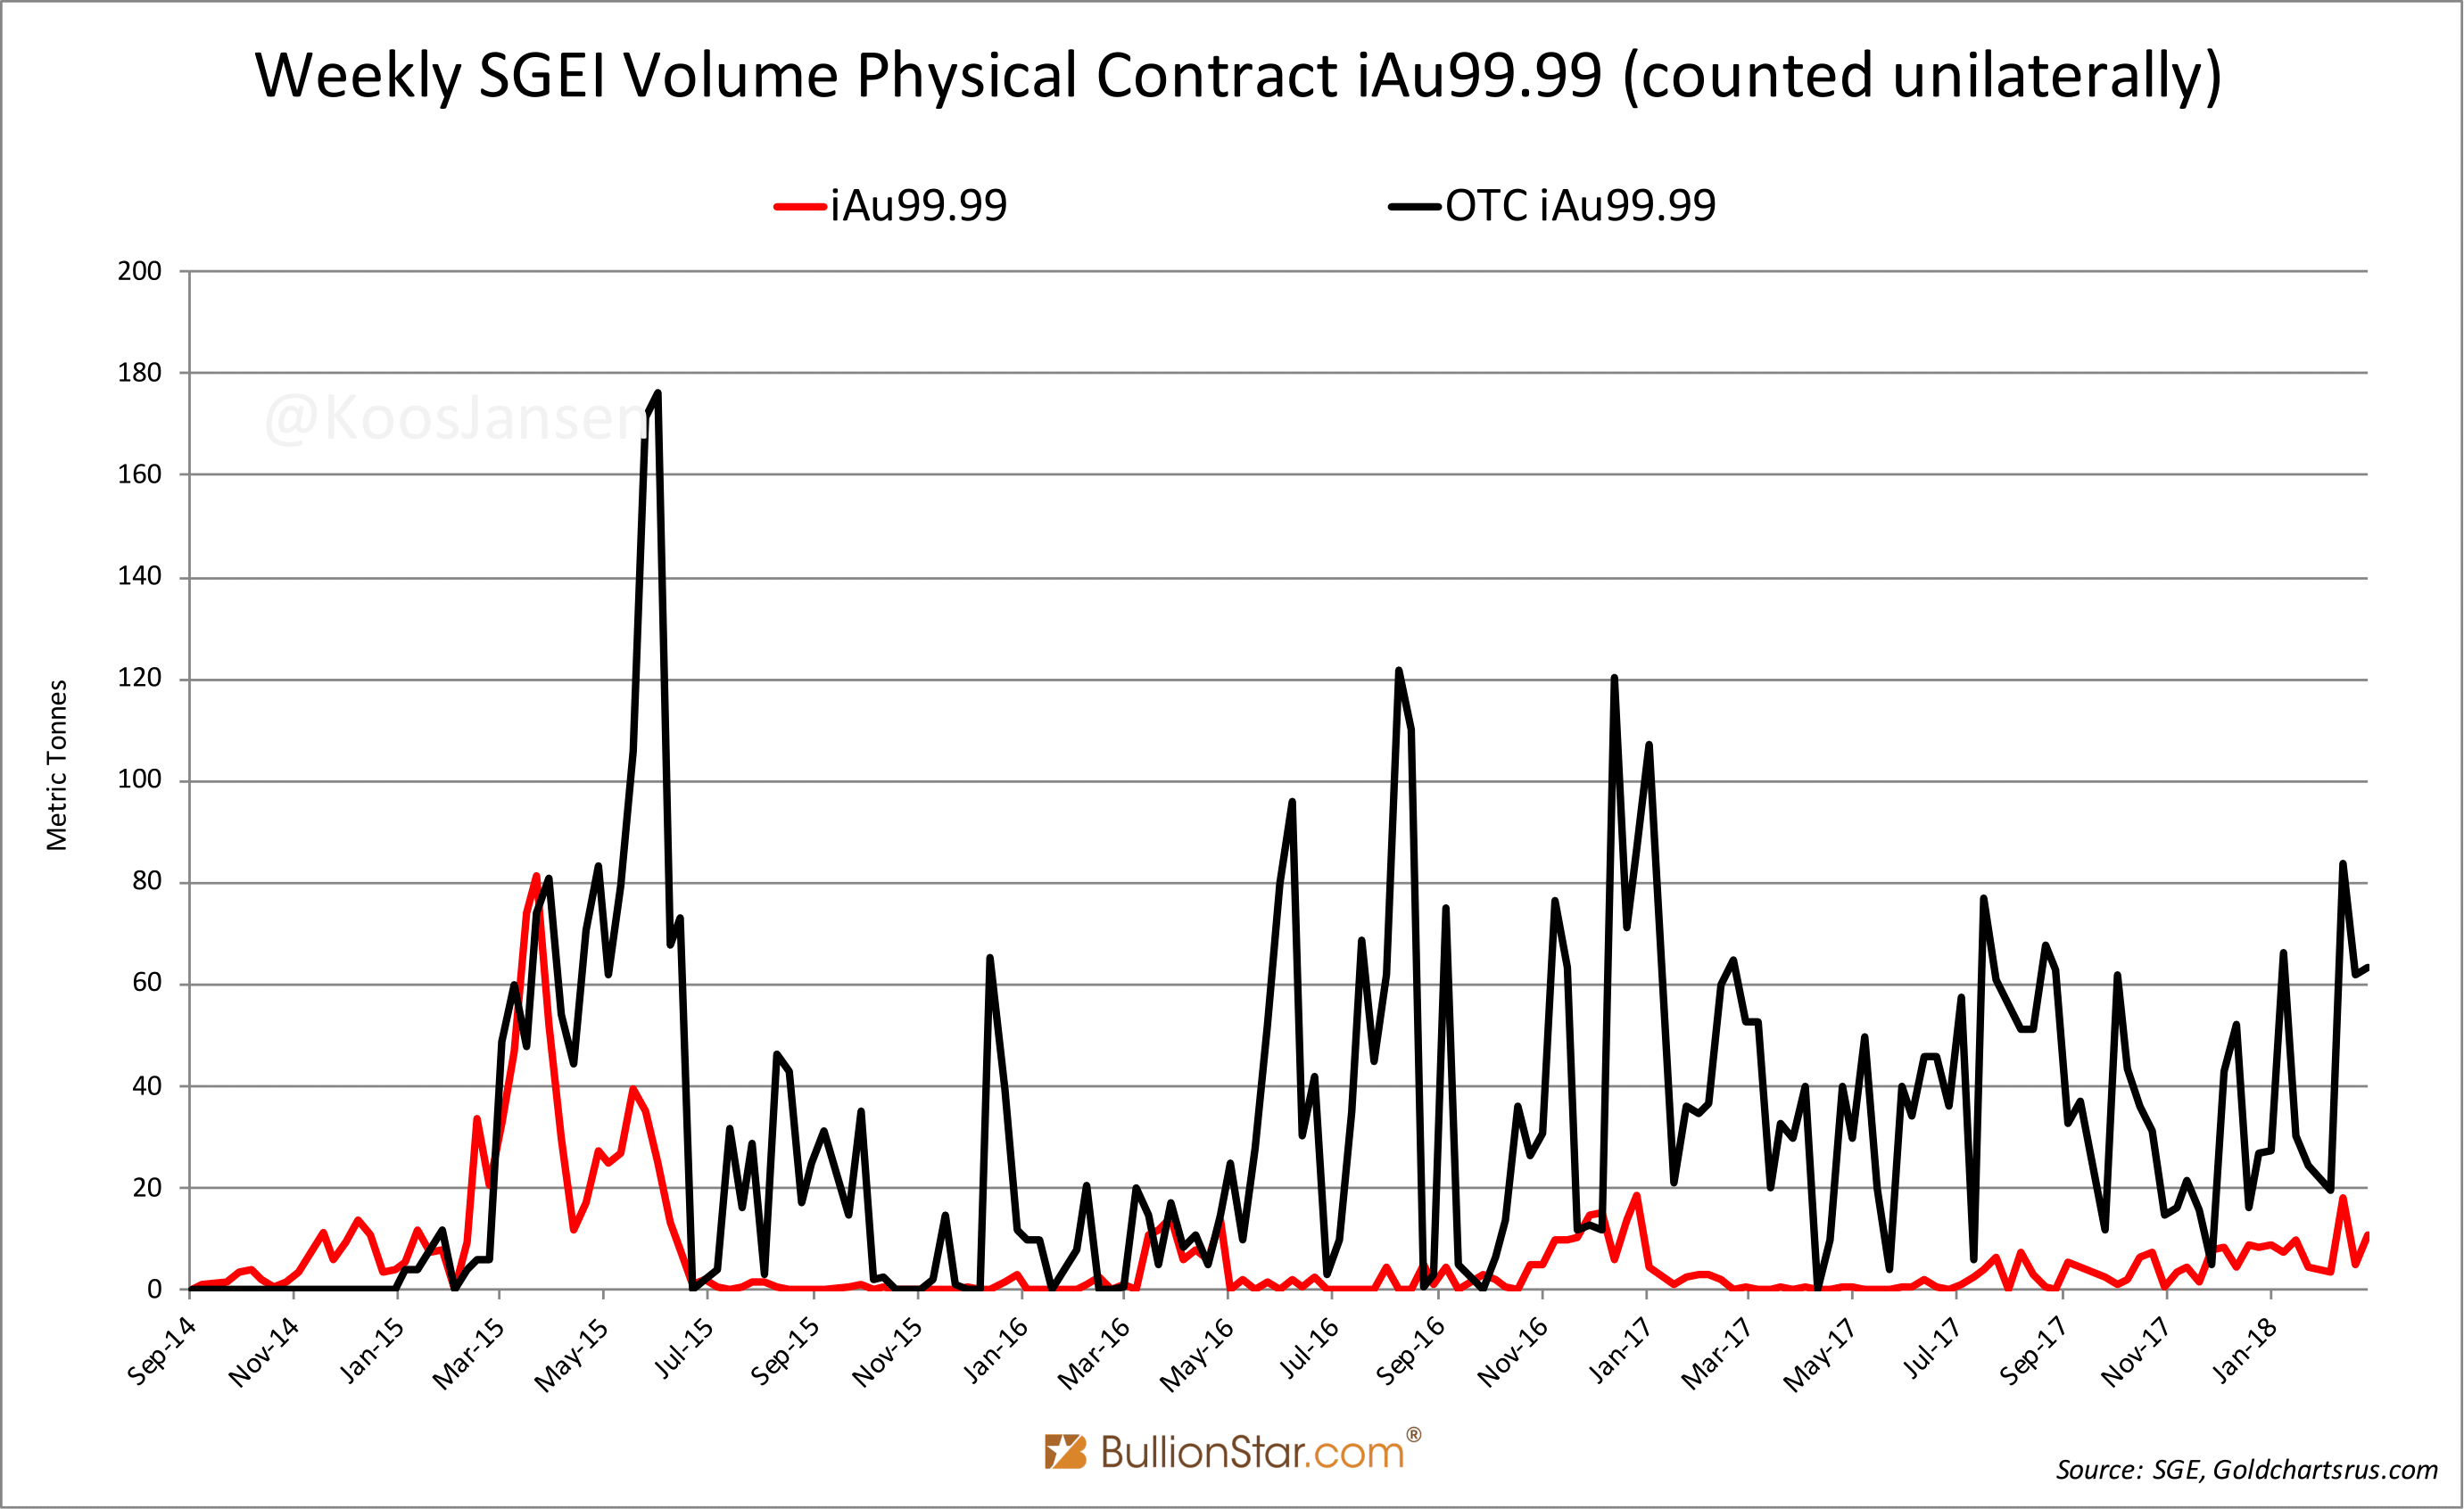 Weekly SGEI Volume Physical Contract, Sep 2014 - Jan 2018